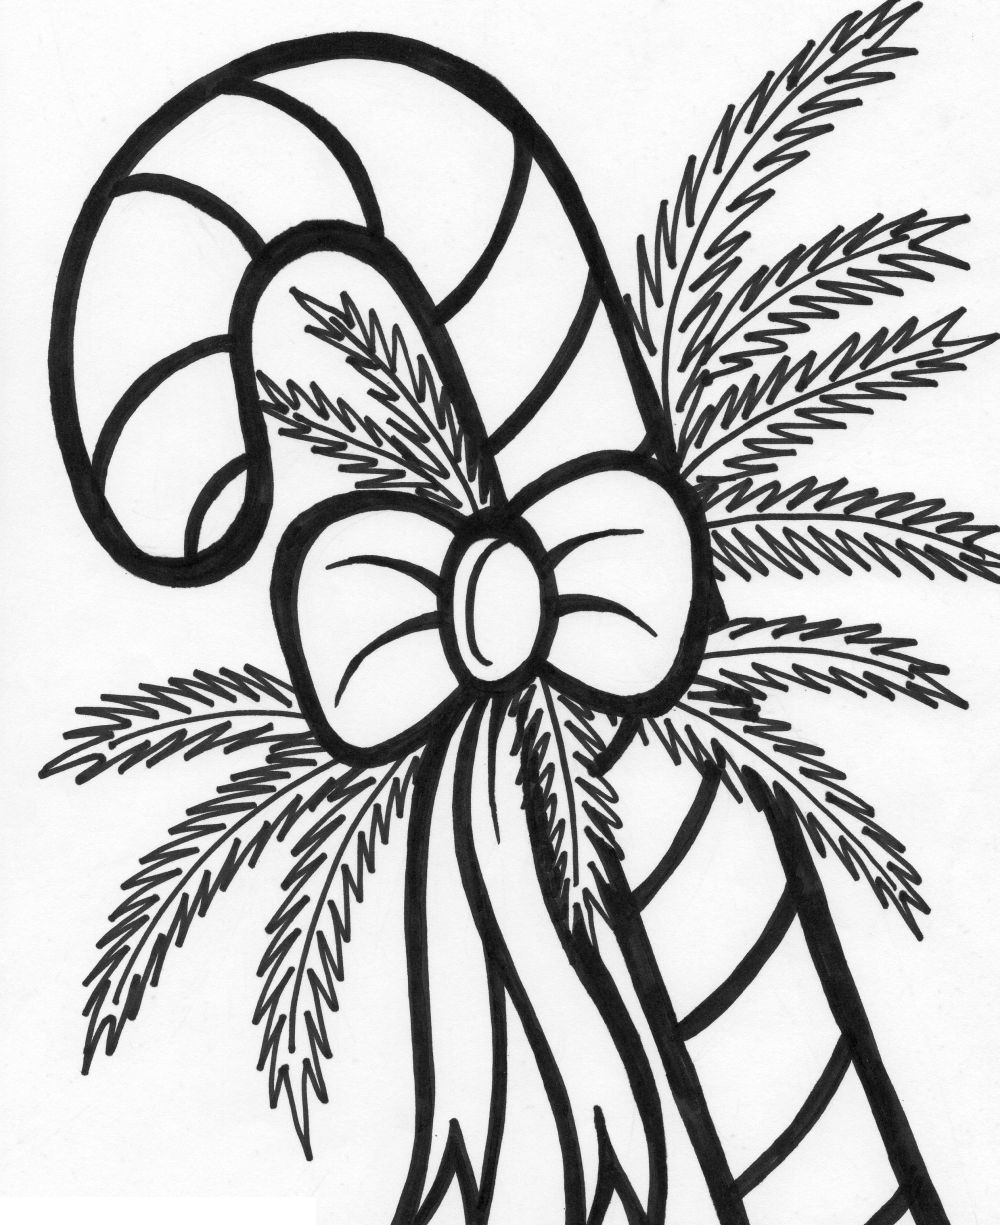 Candy Cane Line Drawing At GetDrawings